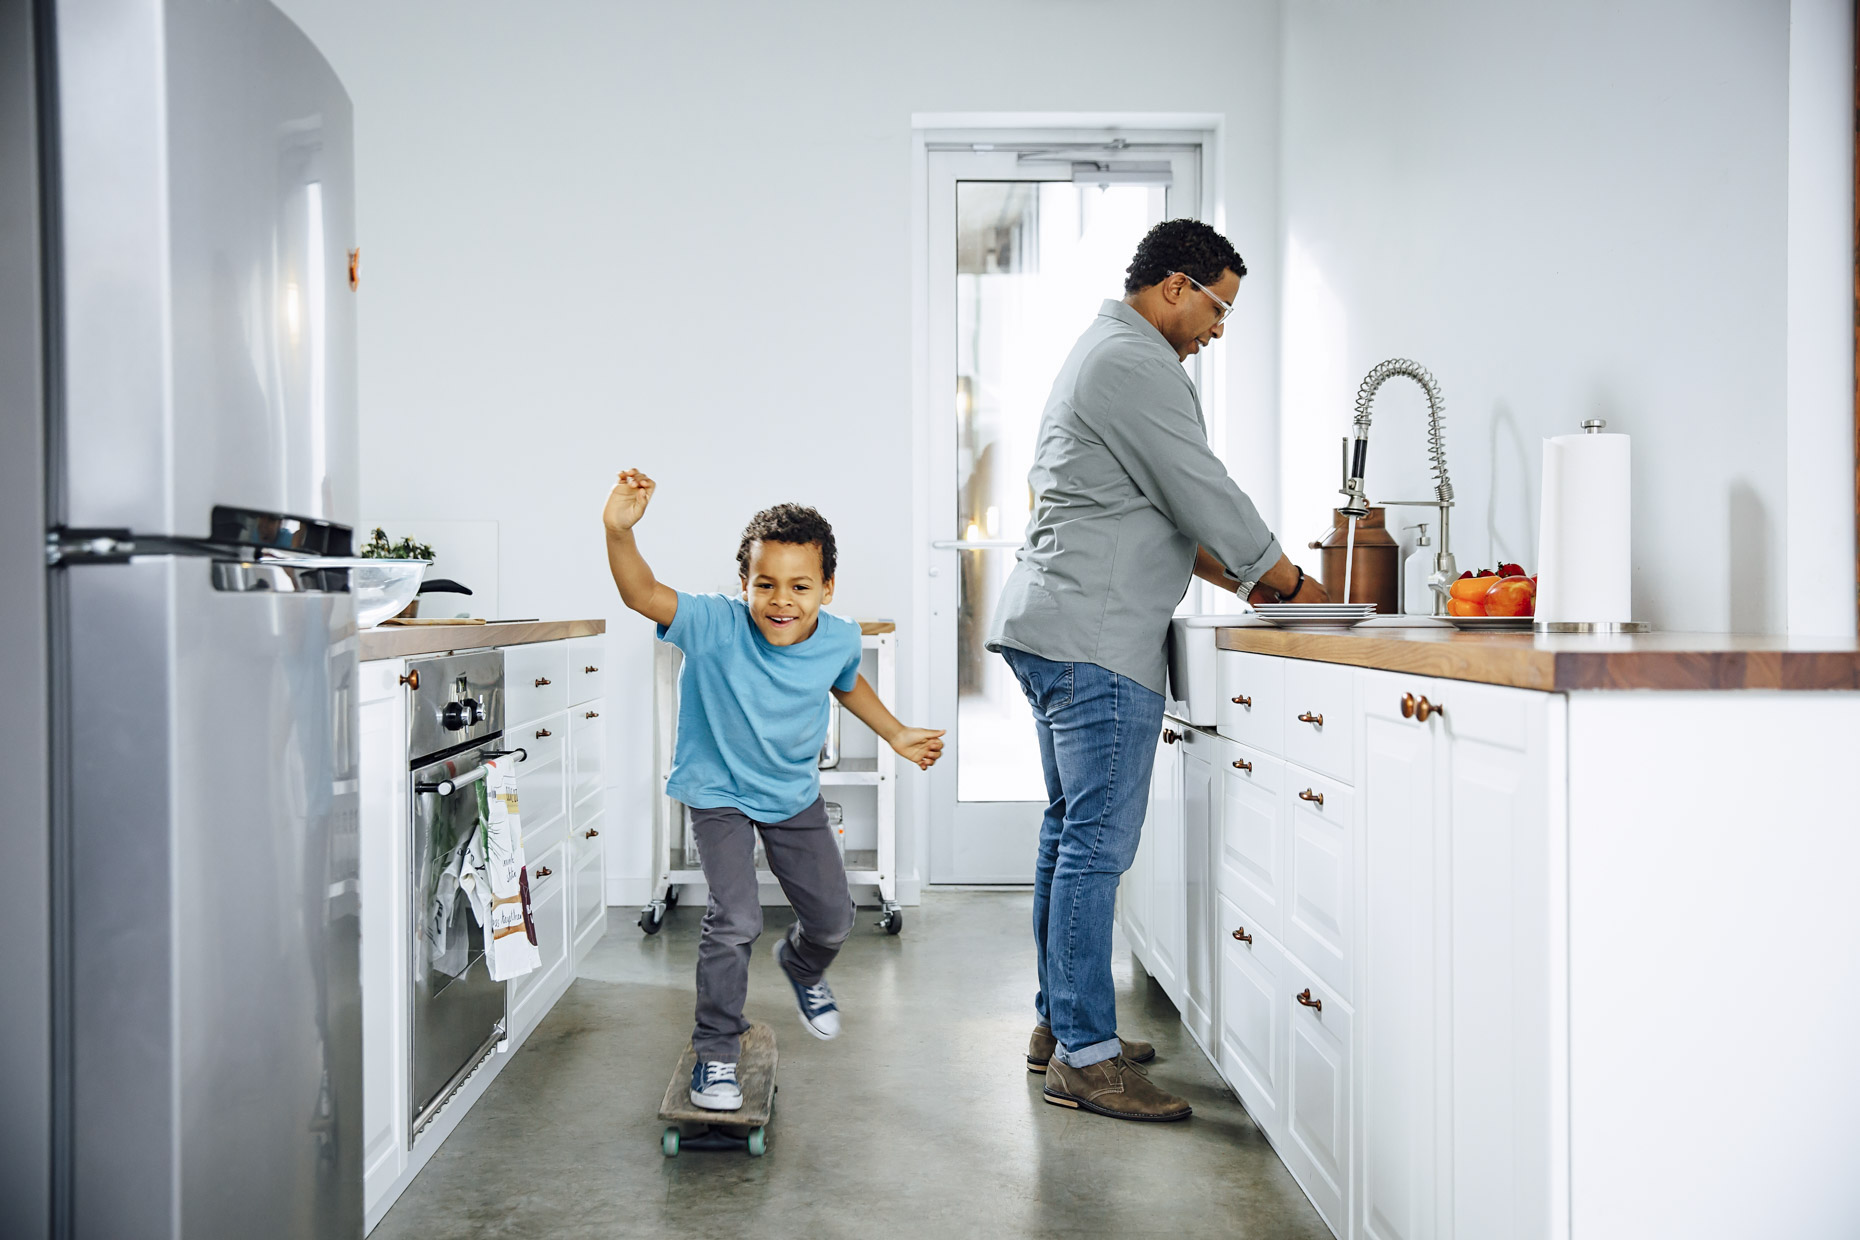 Boy skateboarding in kitchen while man does dishes